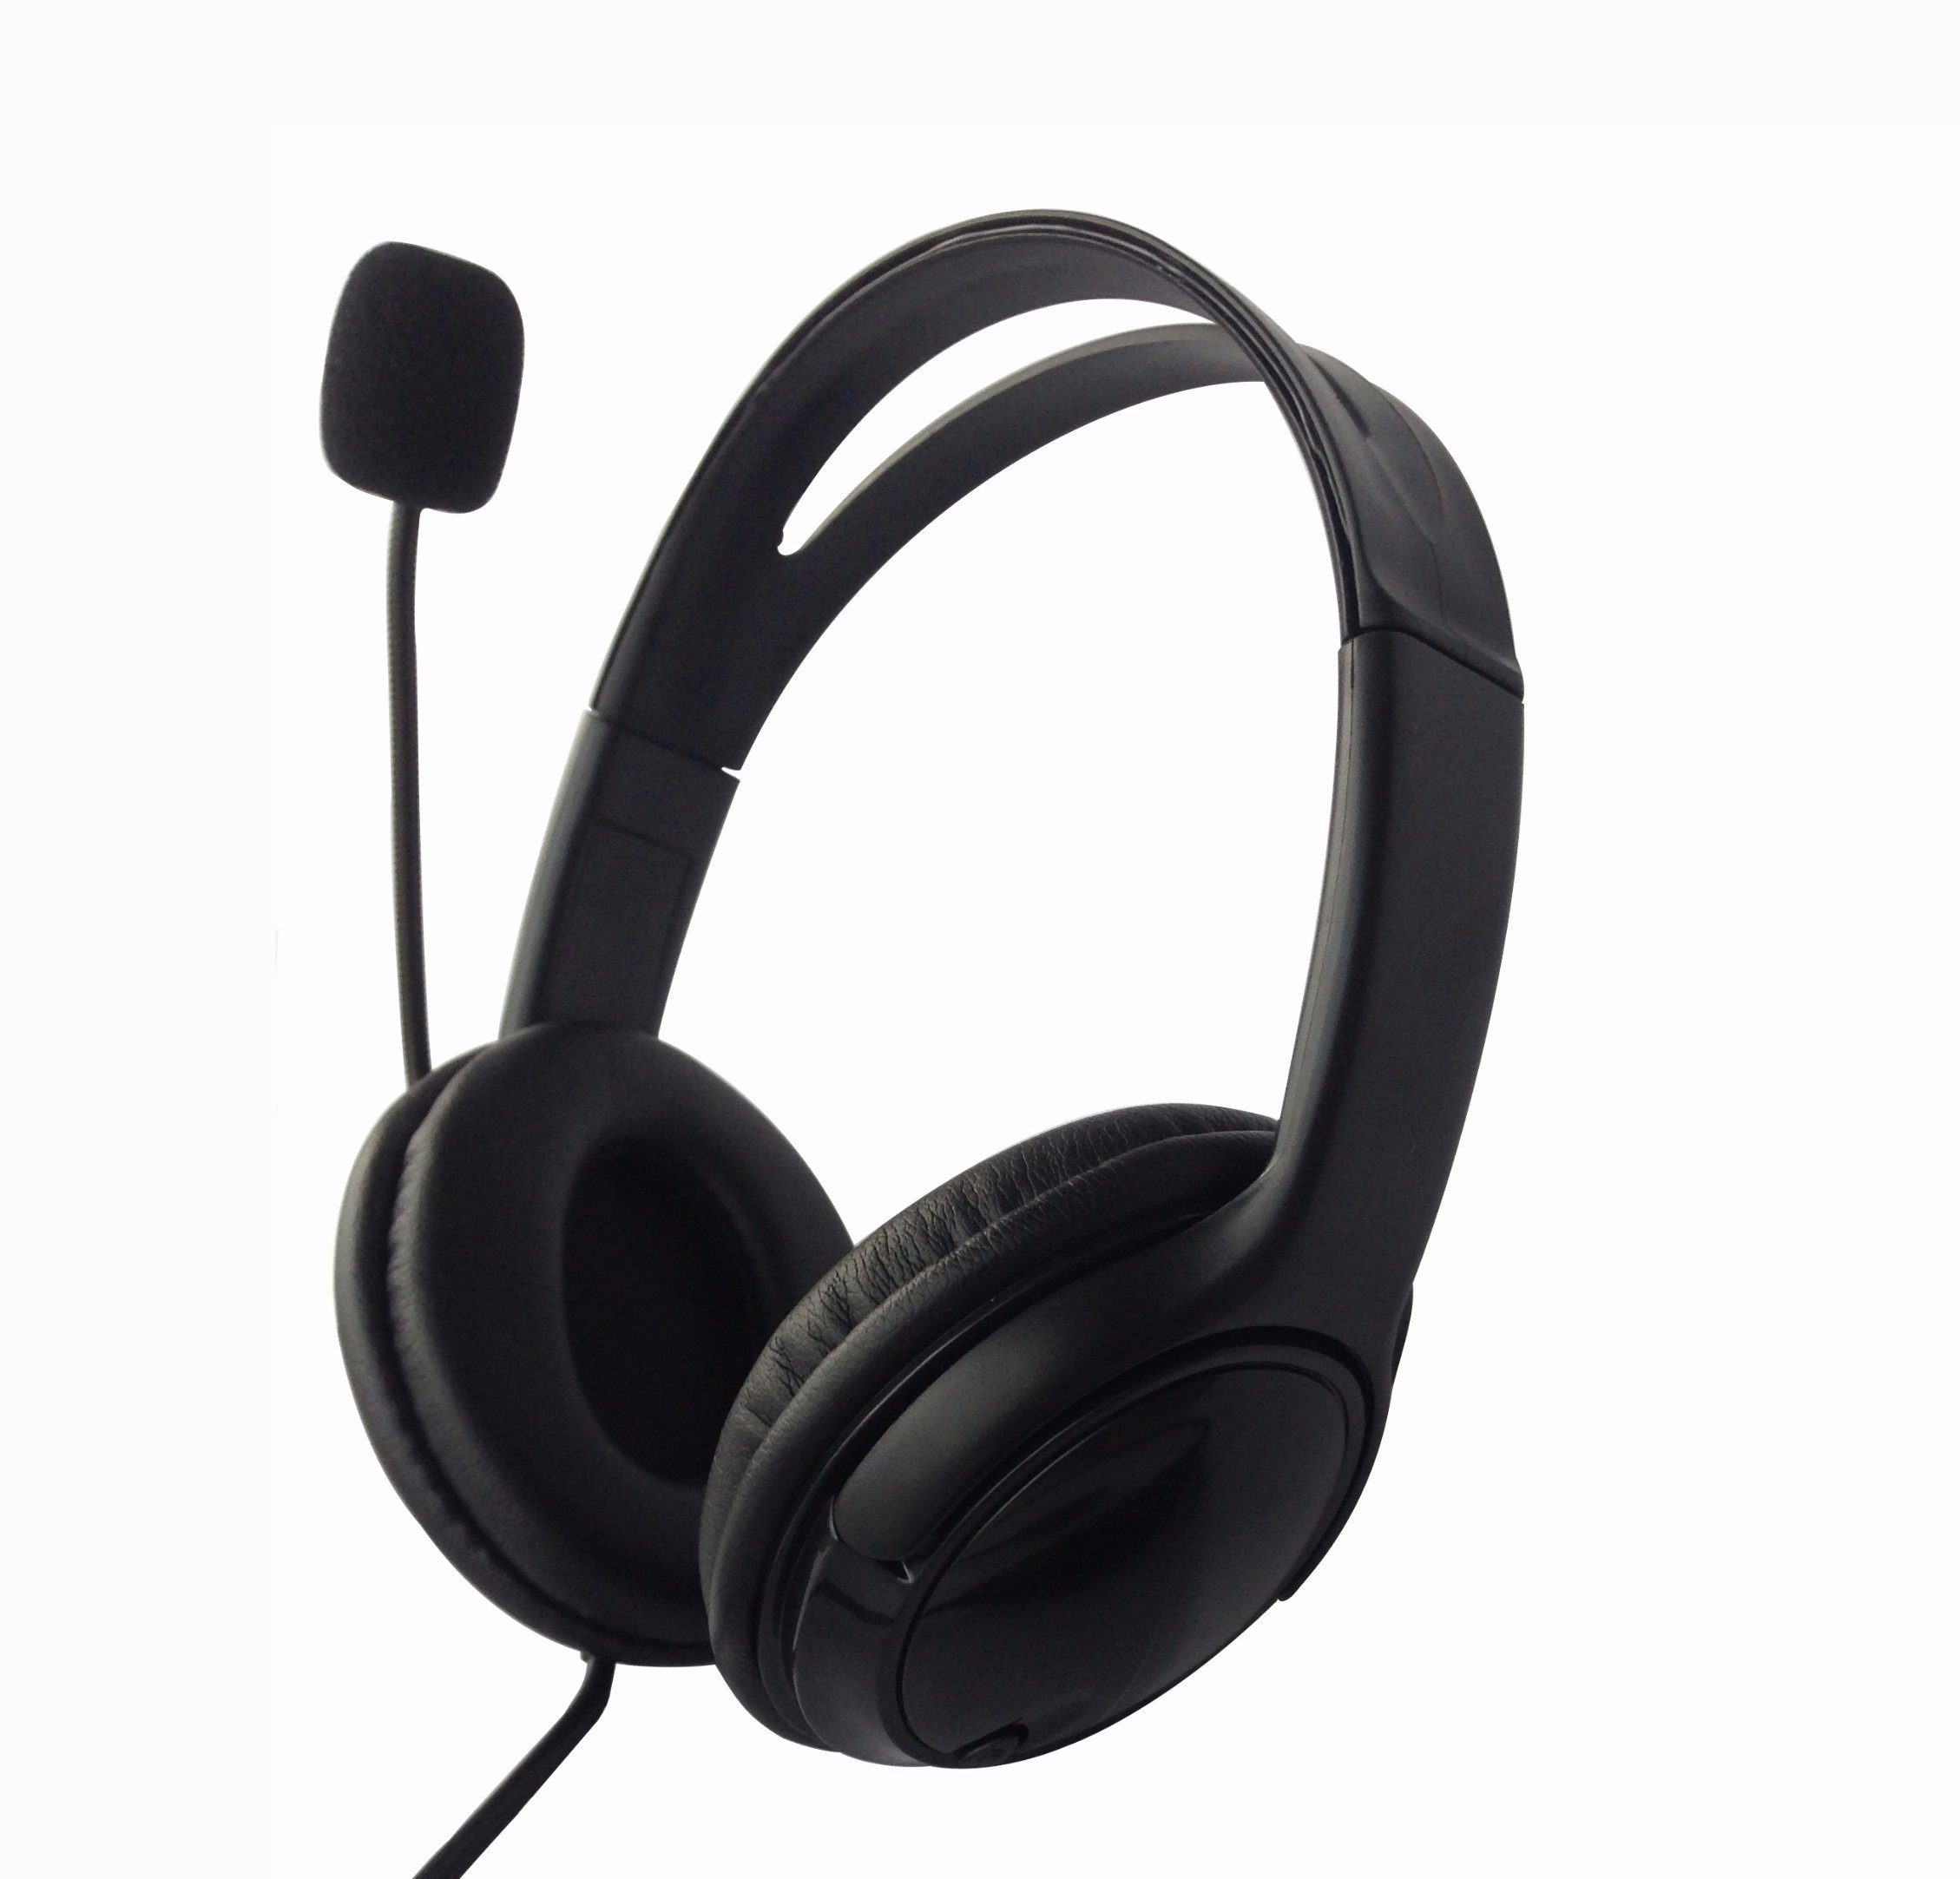 Foldable Headphones Adjustable Headband Headsets with Microphone and Volume Control 3.5mm for Cellphones Smartphones